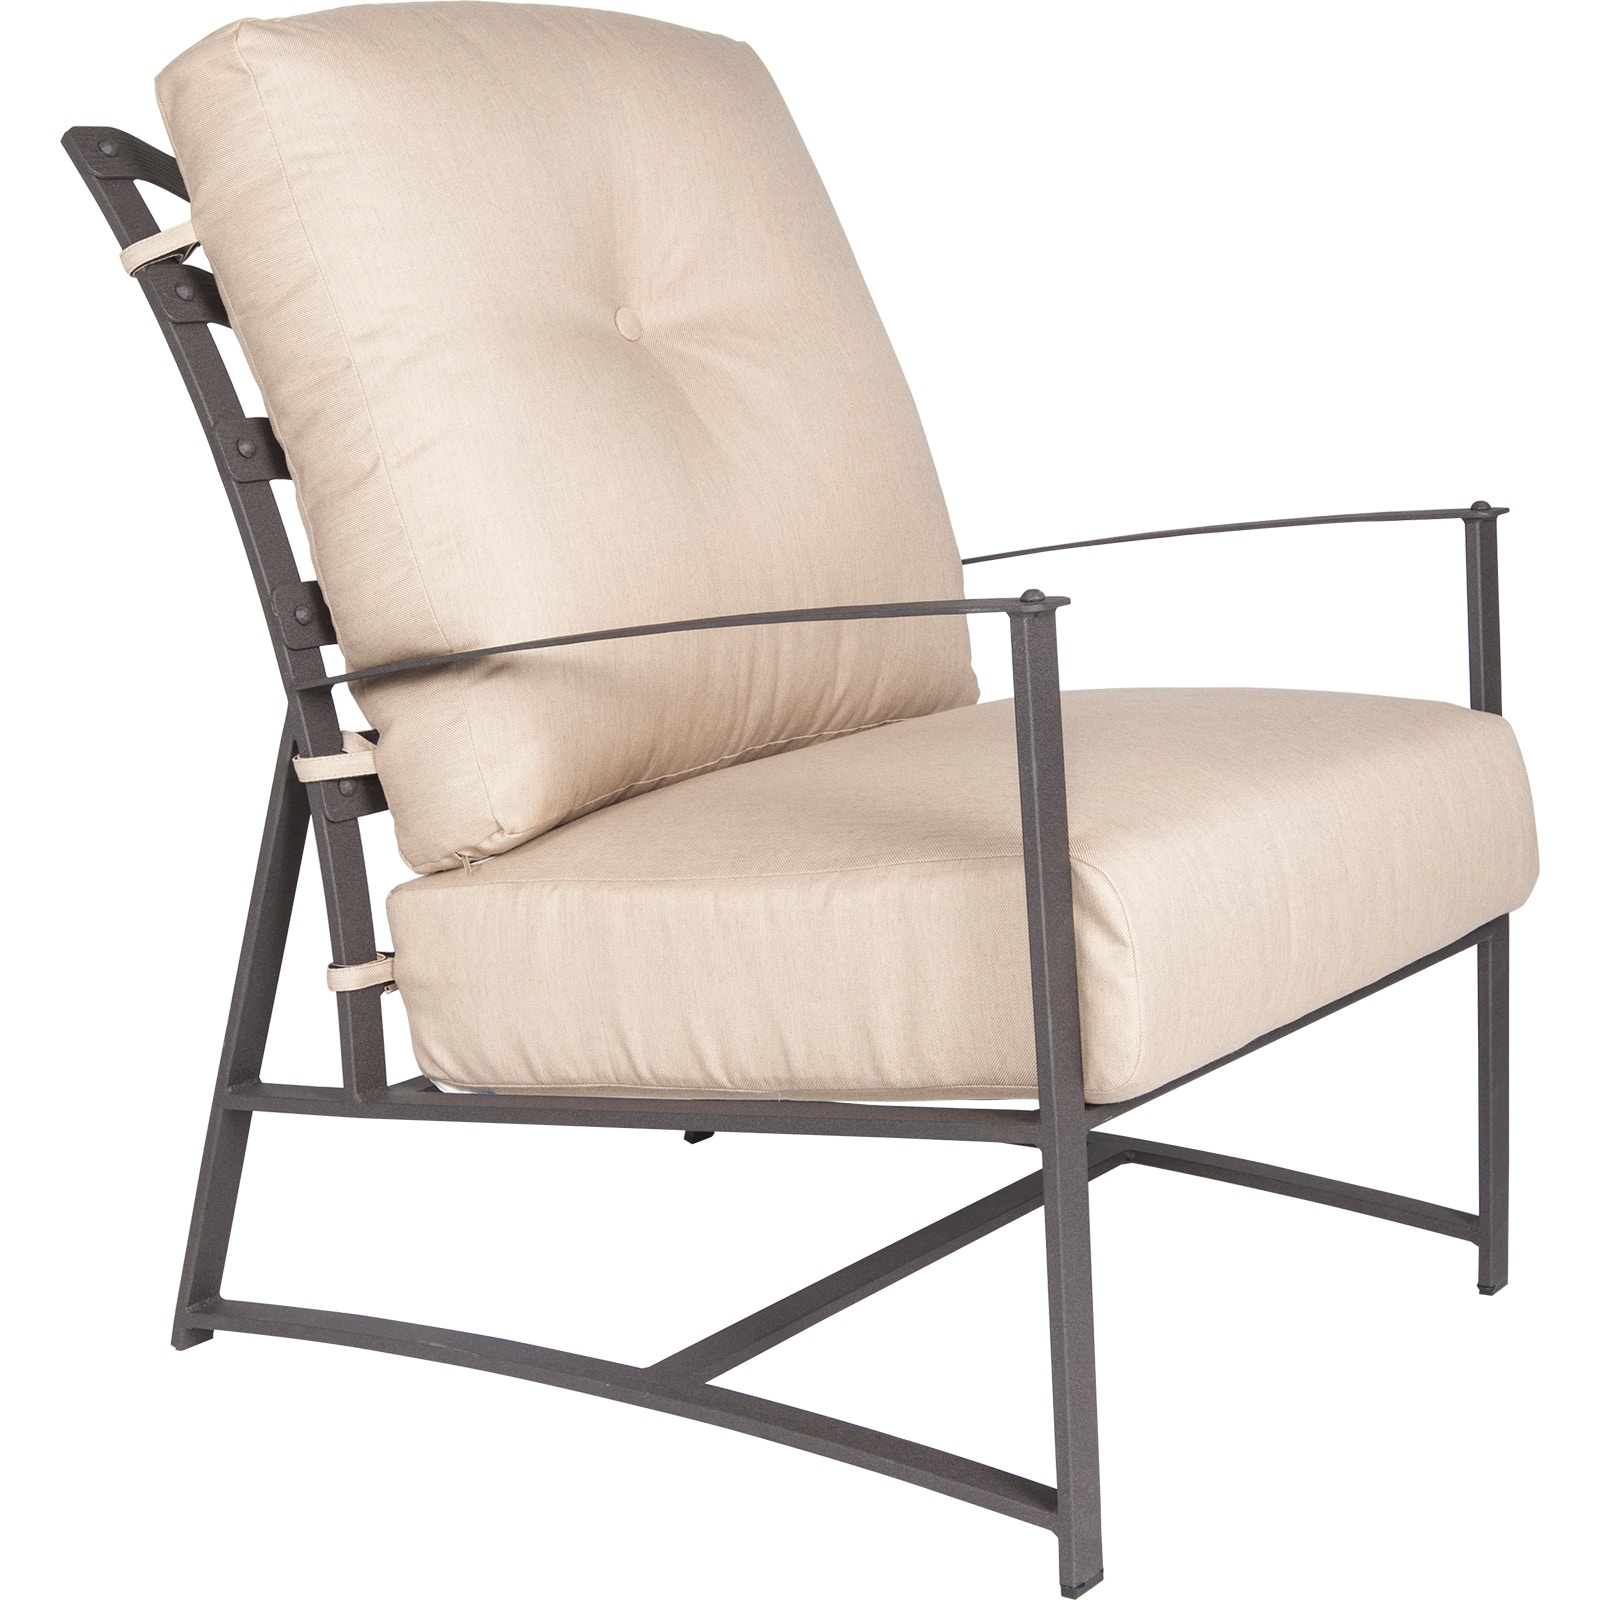 Bon OW Lee Furniture Ridgewood Lounge Chairs 73125 CC